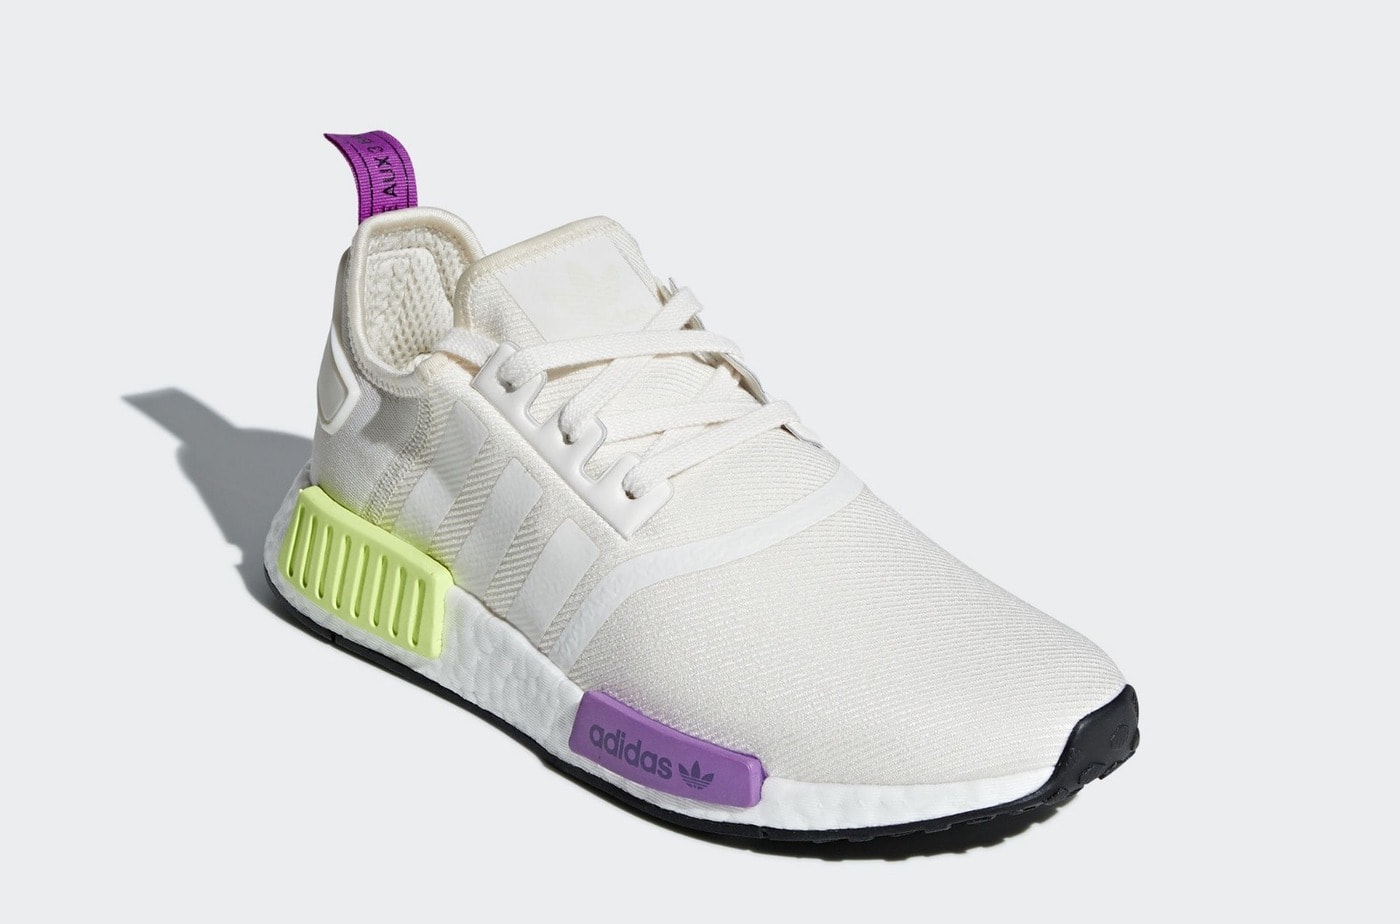 on sale e4632 647f4 SEE MORE adidas NMD Release Dates